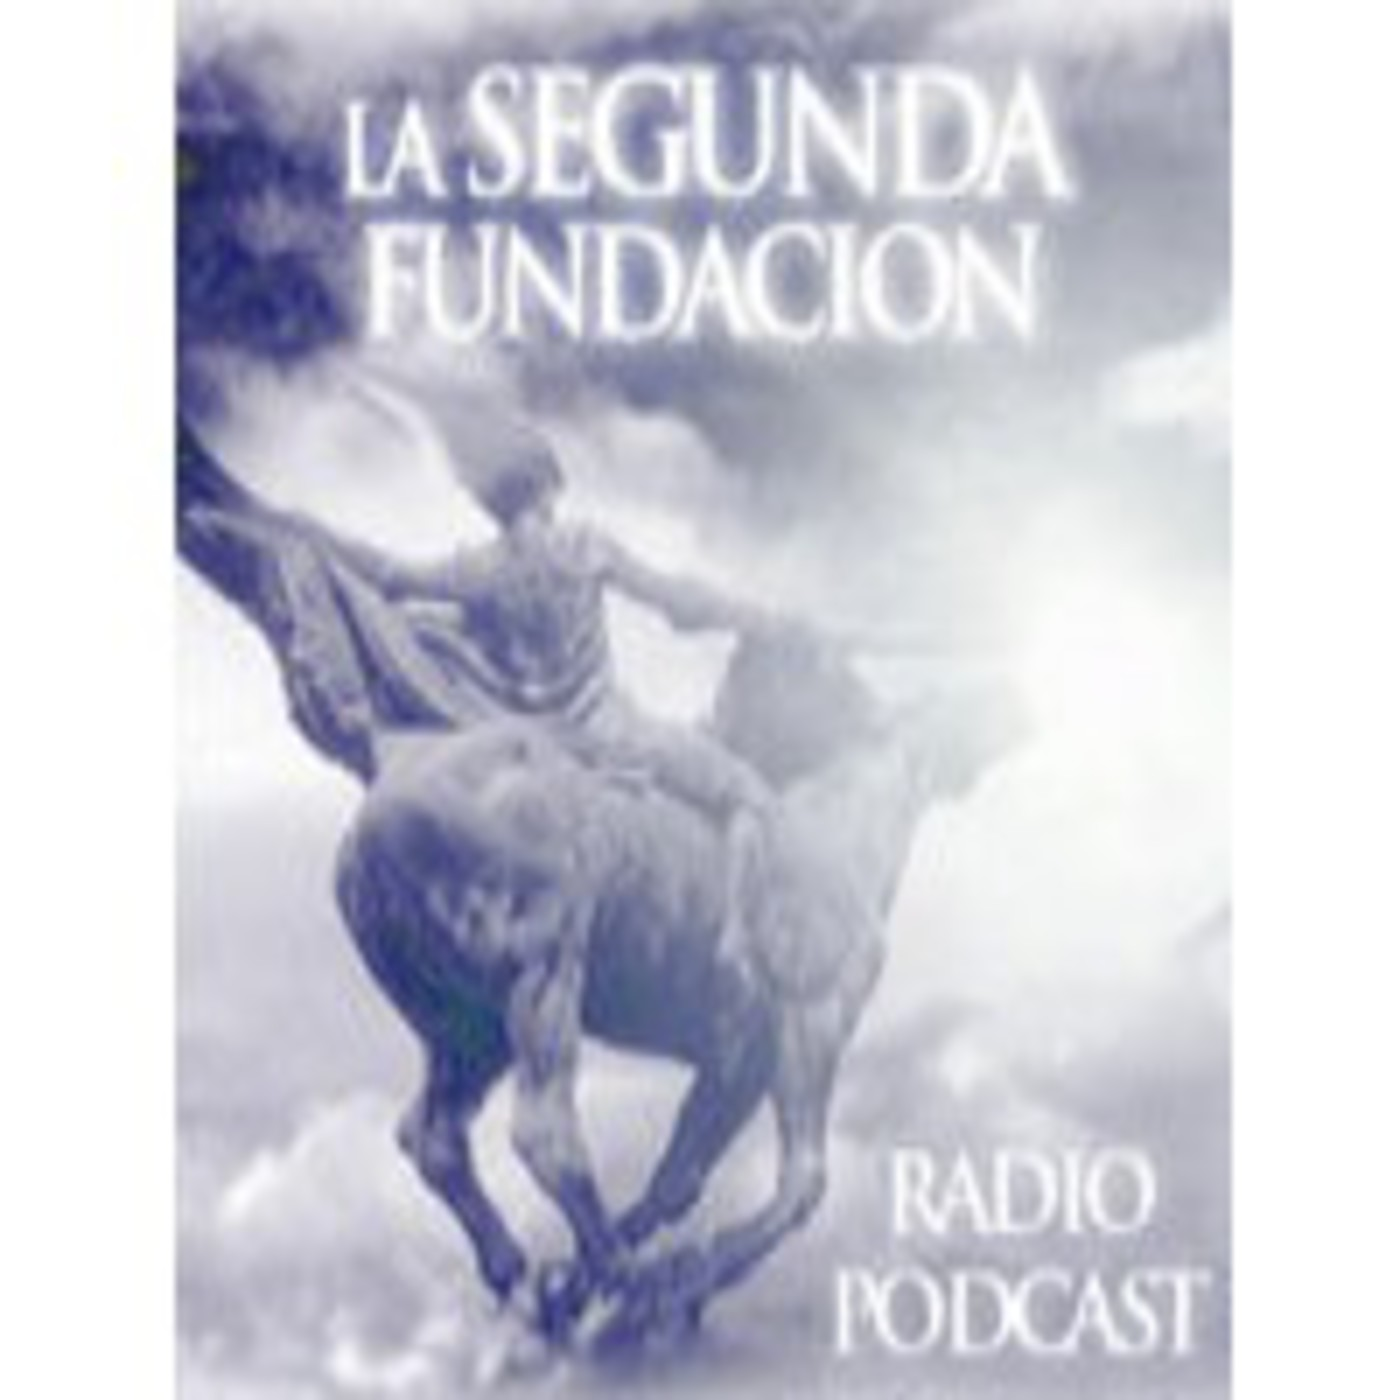 livio amato,radio web,la segunda fundacion radio podcast